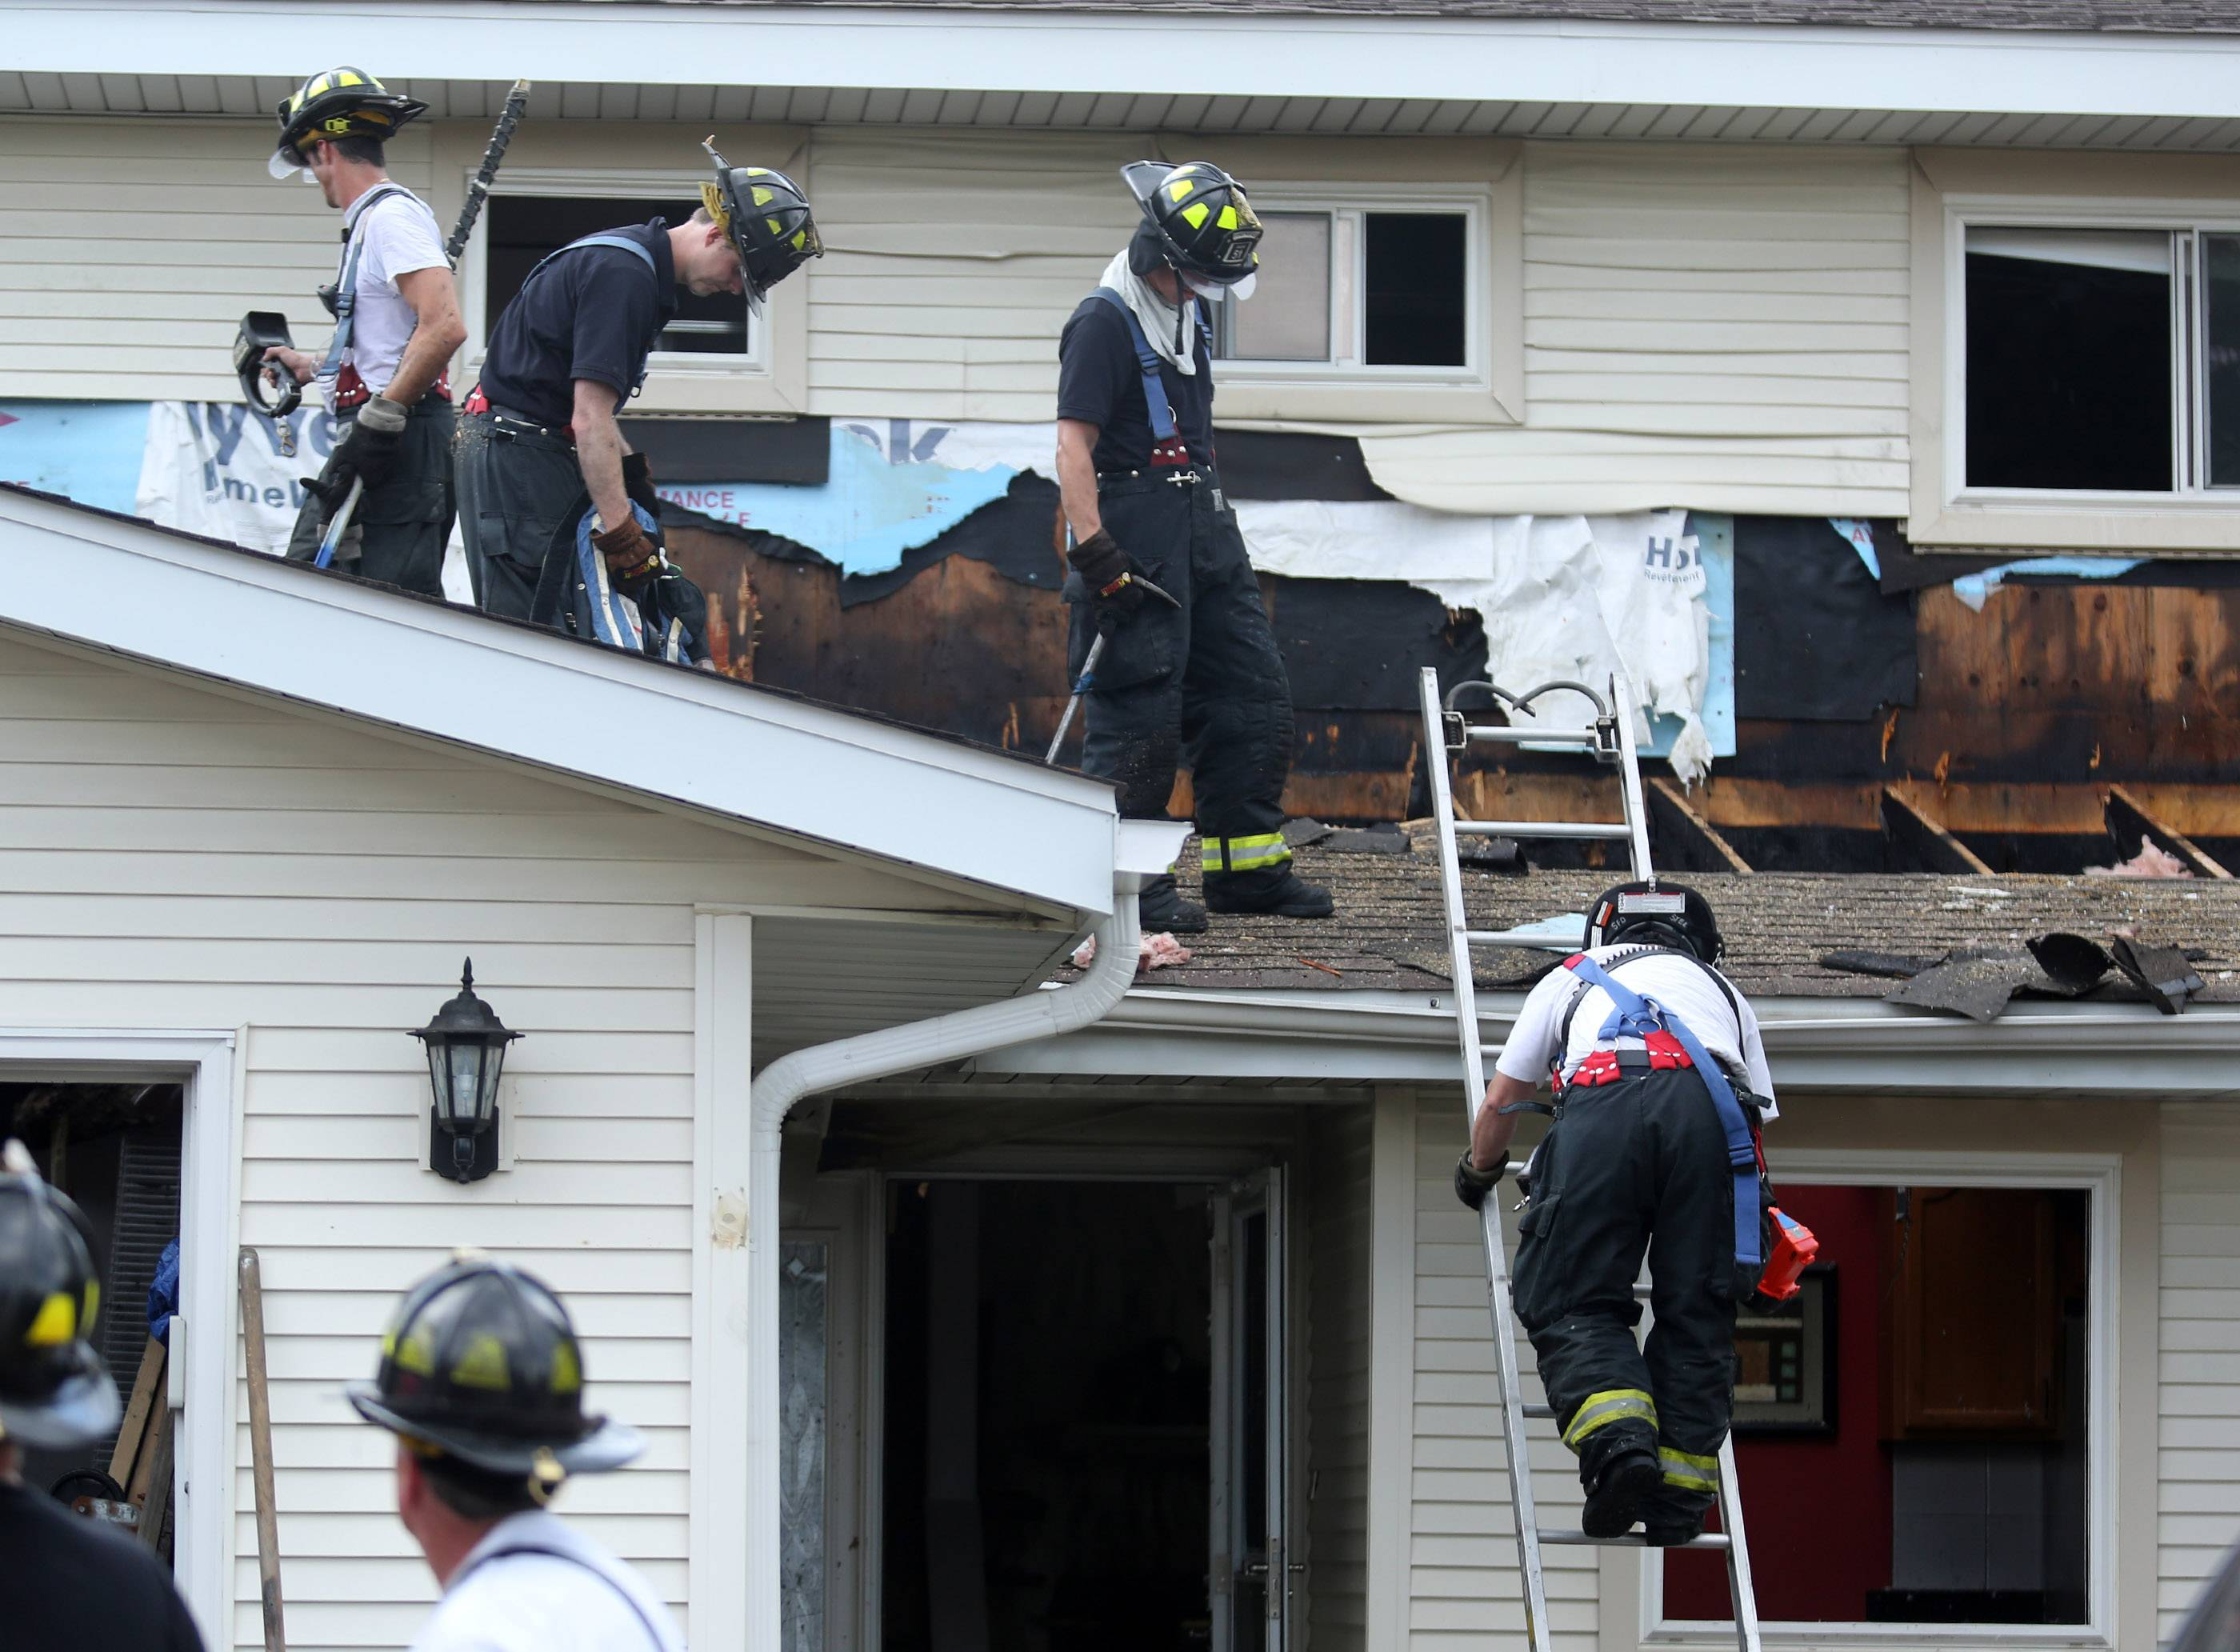 Schaumburg firefighters at the scene of a house fire on the 900 block of Walpole Lane on Wednesday in Schaumburg.